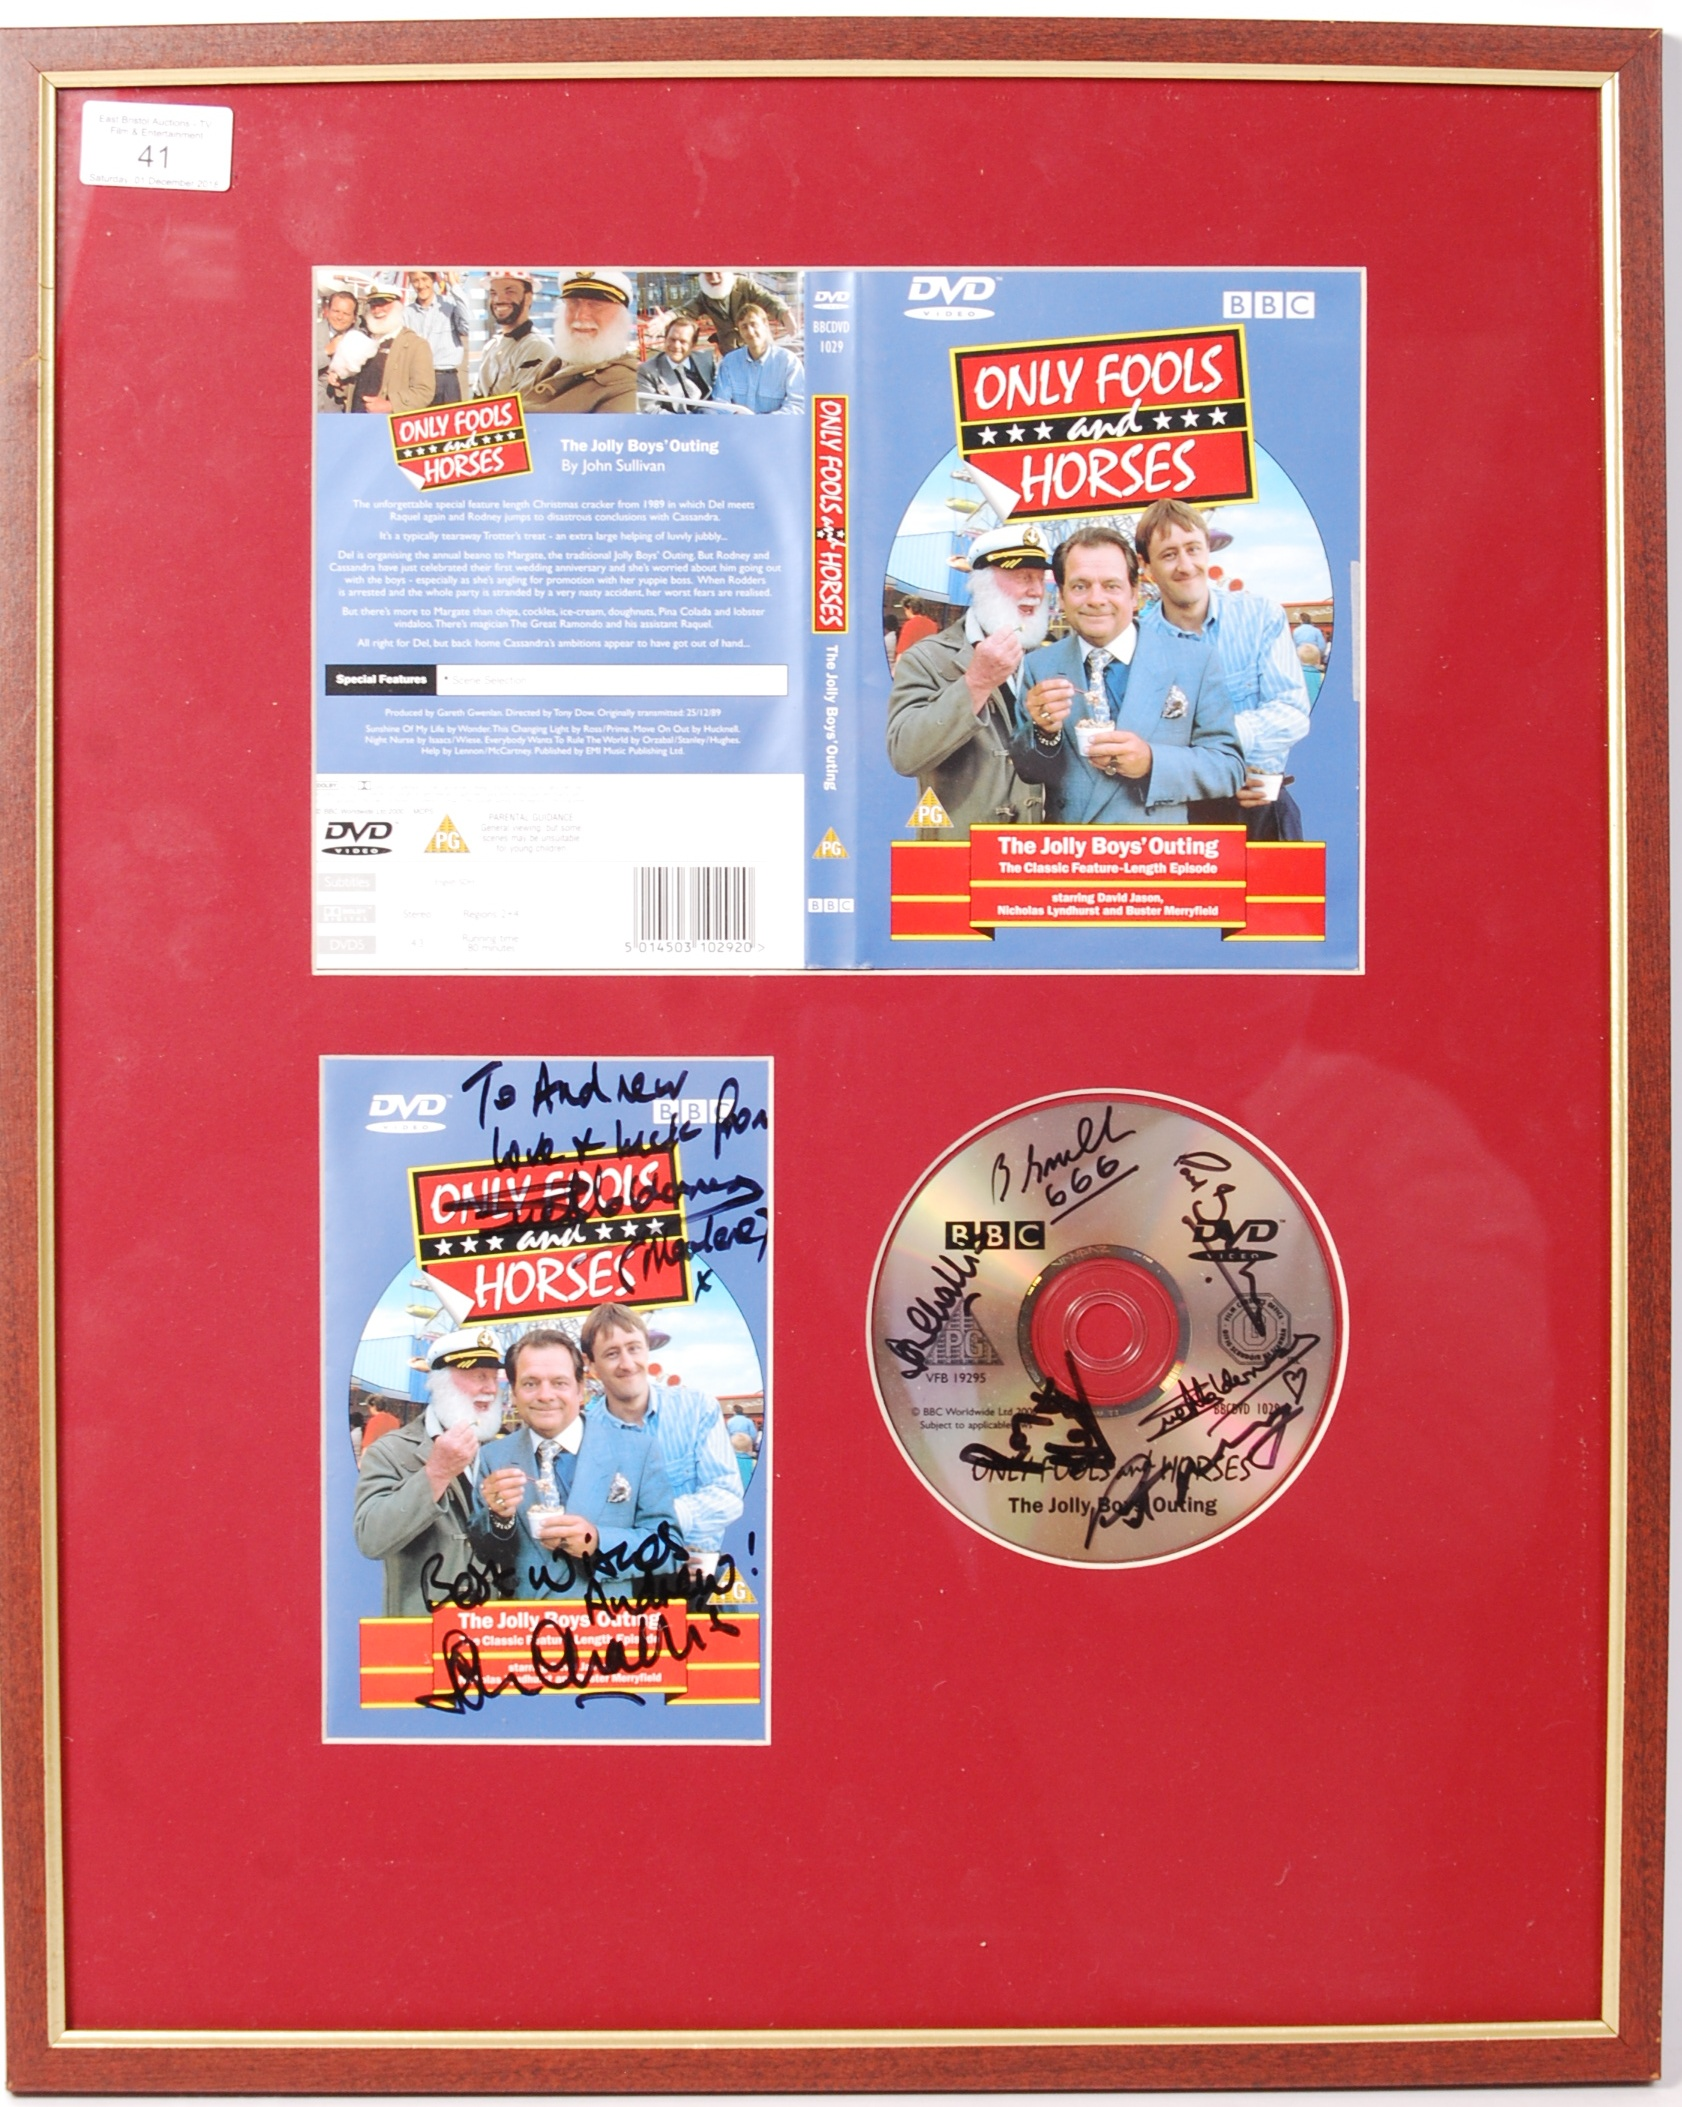 Lot 41 - ONLY FOOLS & HORSES SIGNED DVD PRESENTATION